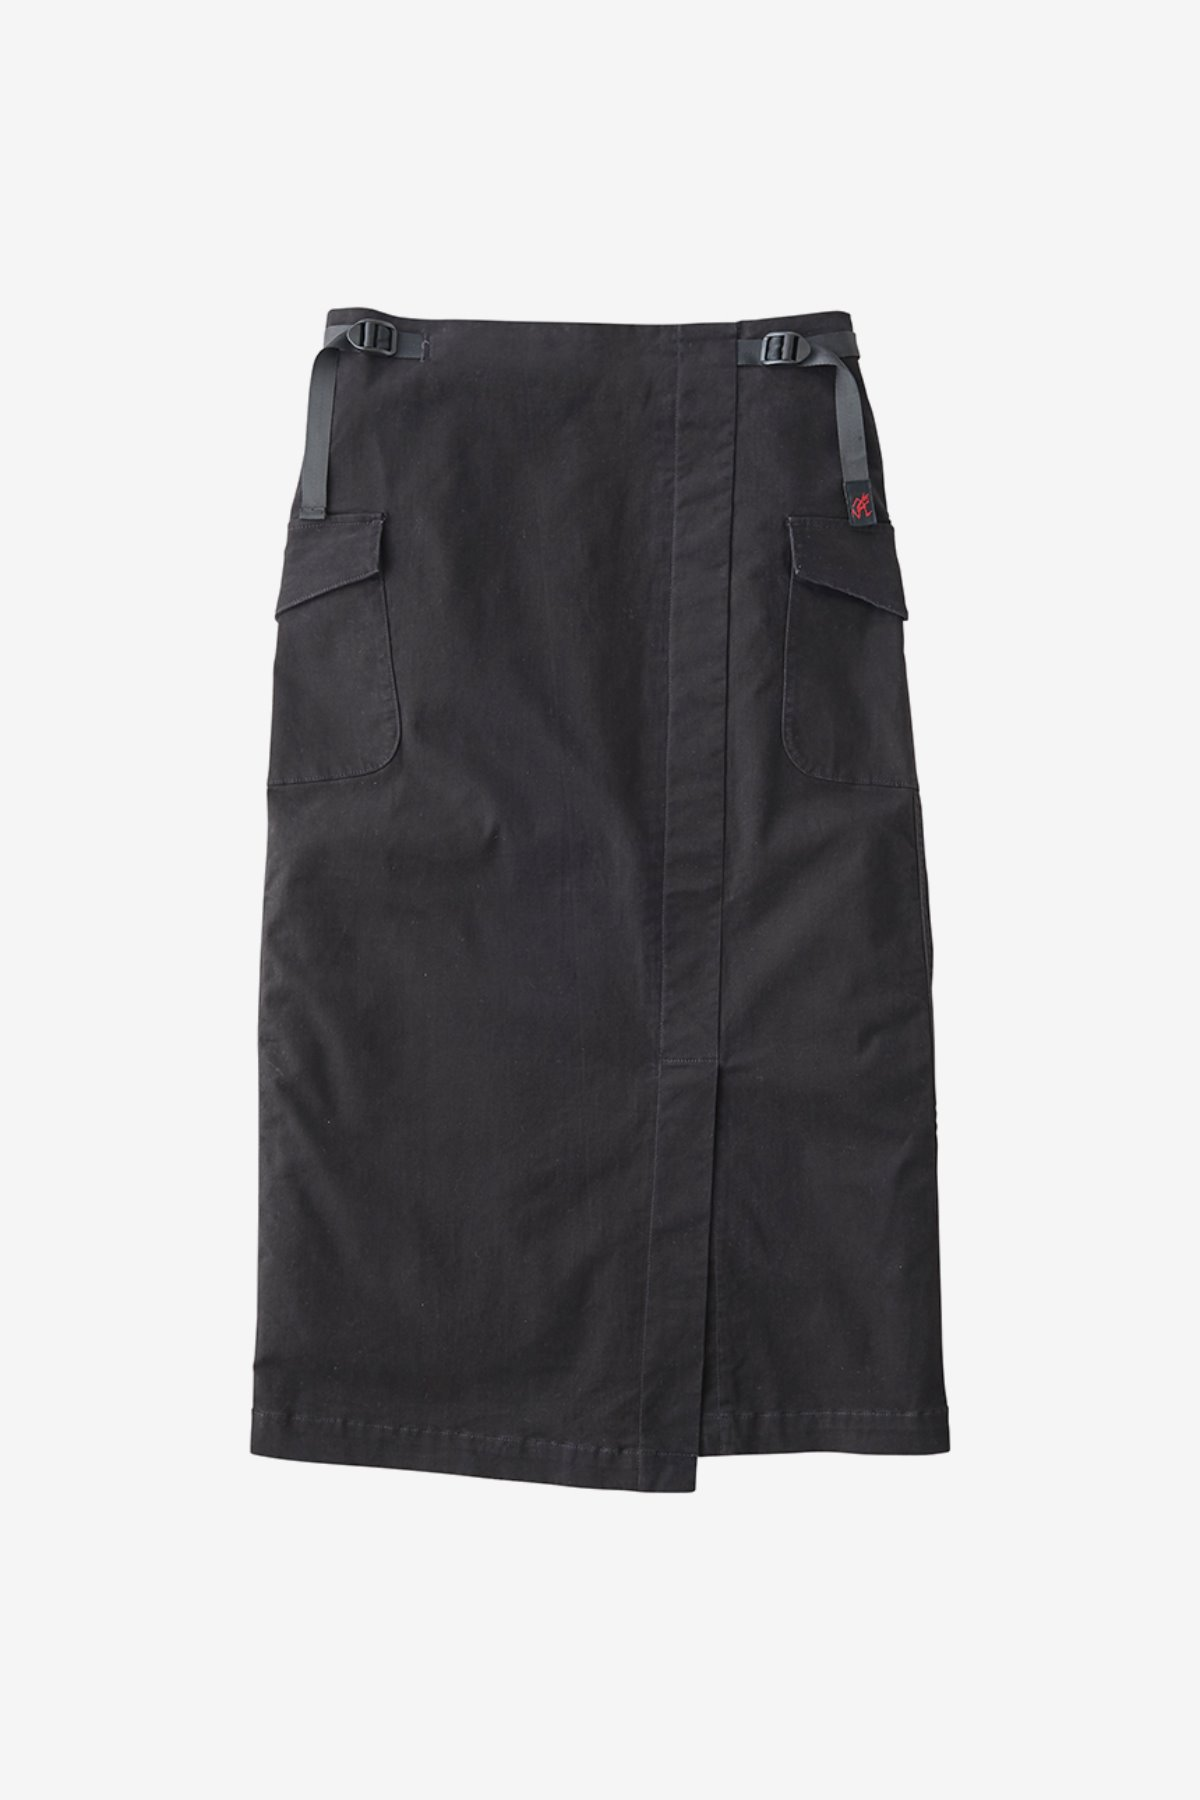 GURKHA SKIRT BLACK